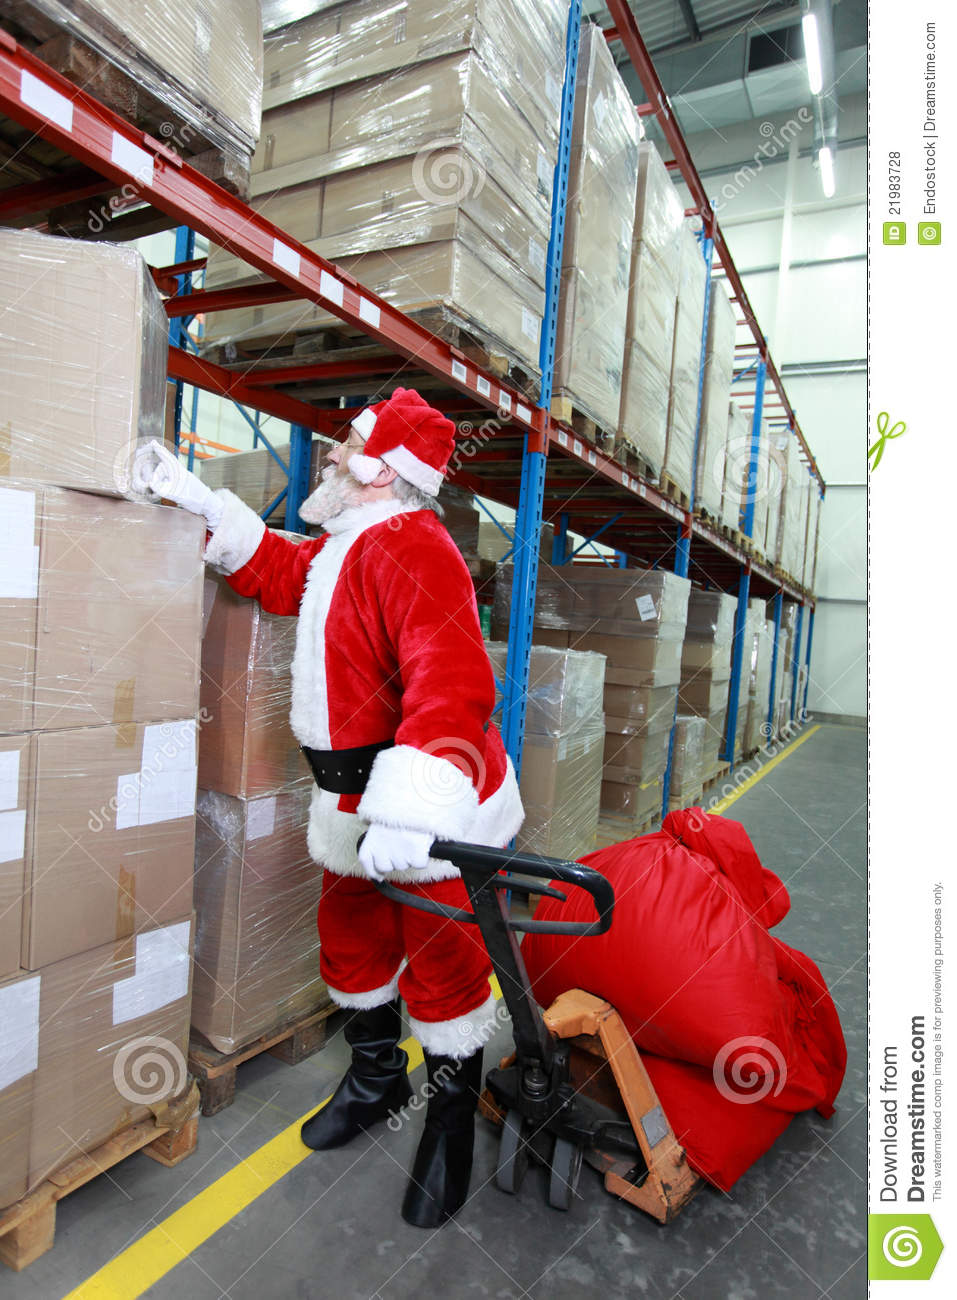 Santa Claus Looking For Presents In Storehouse Royalty Free Stock Photos Image 21983728